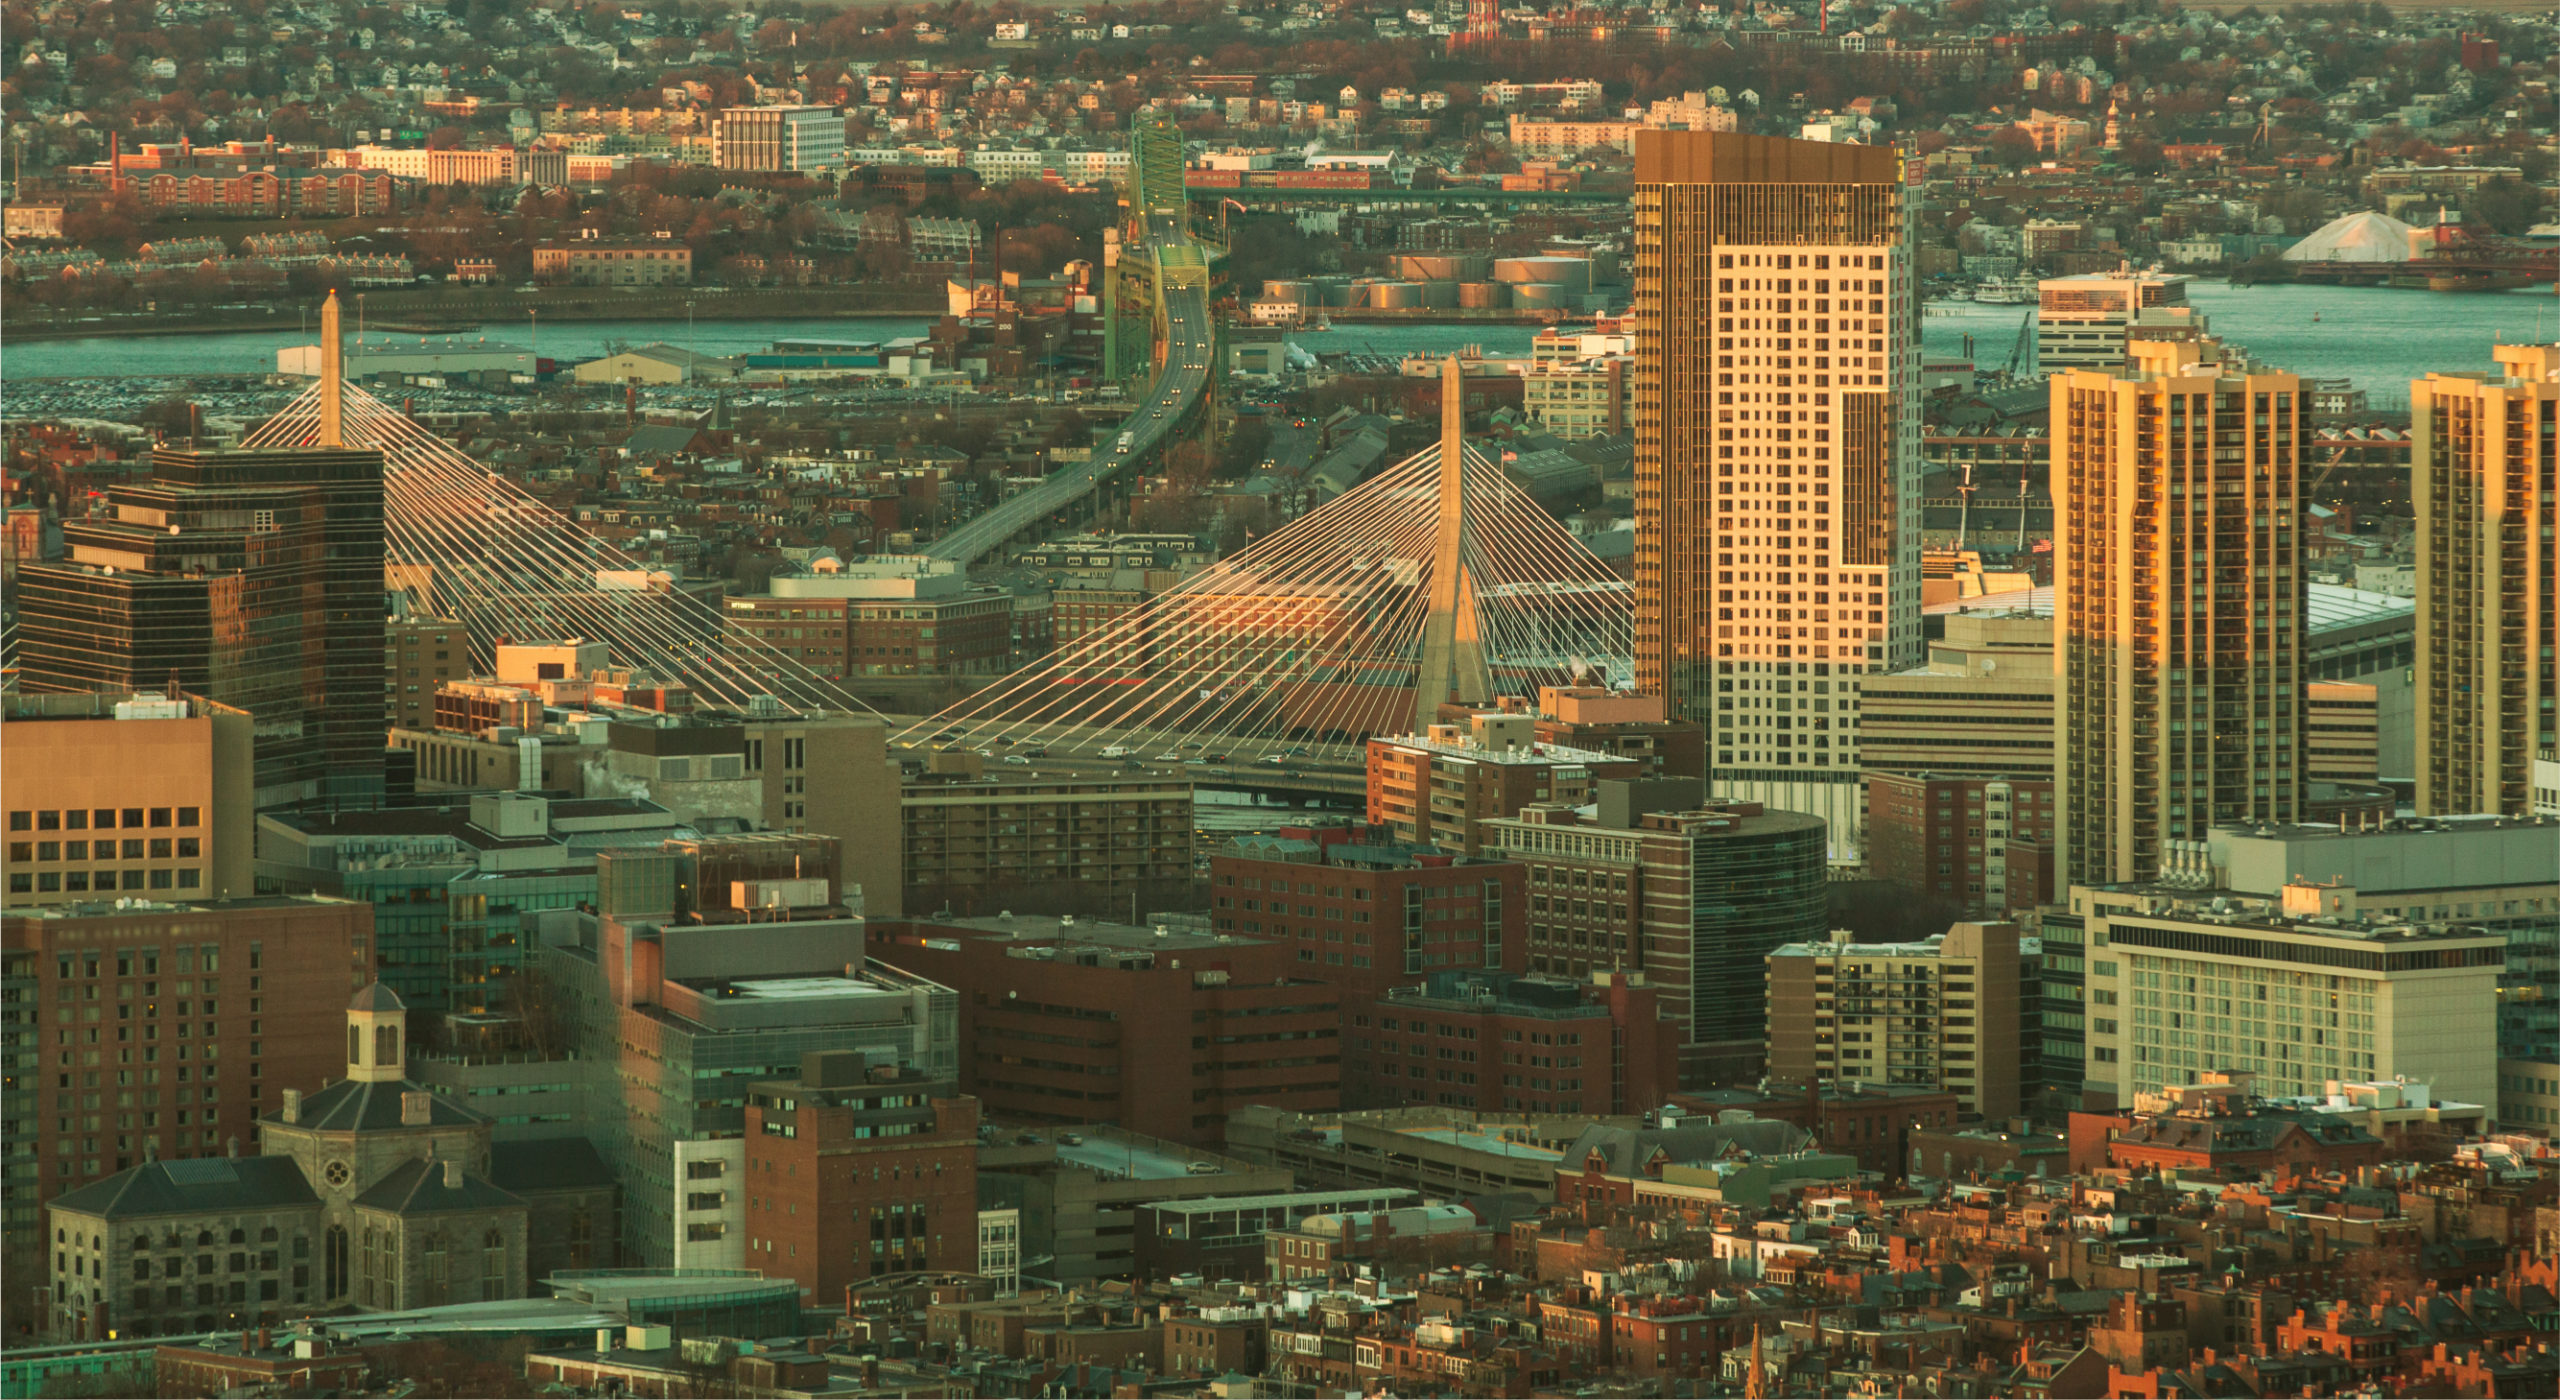 East Coast City Aerial - Boston